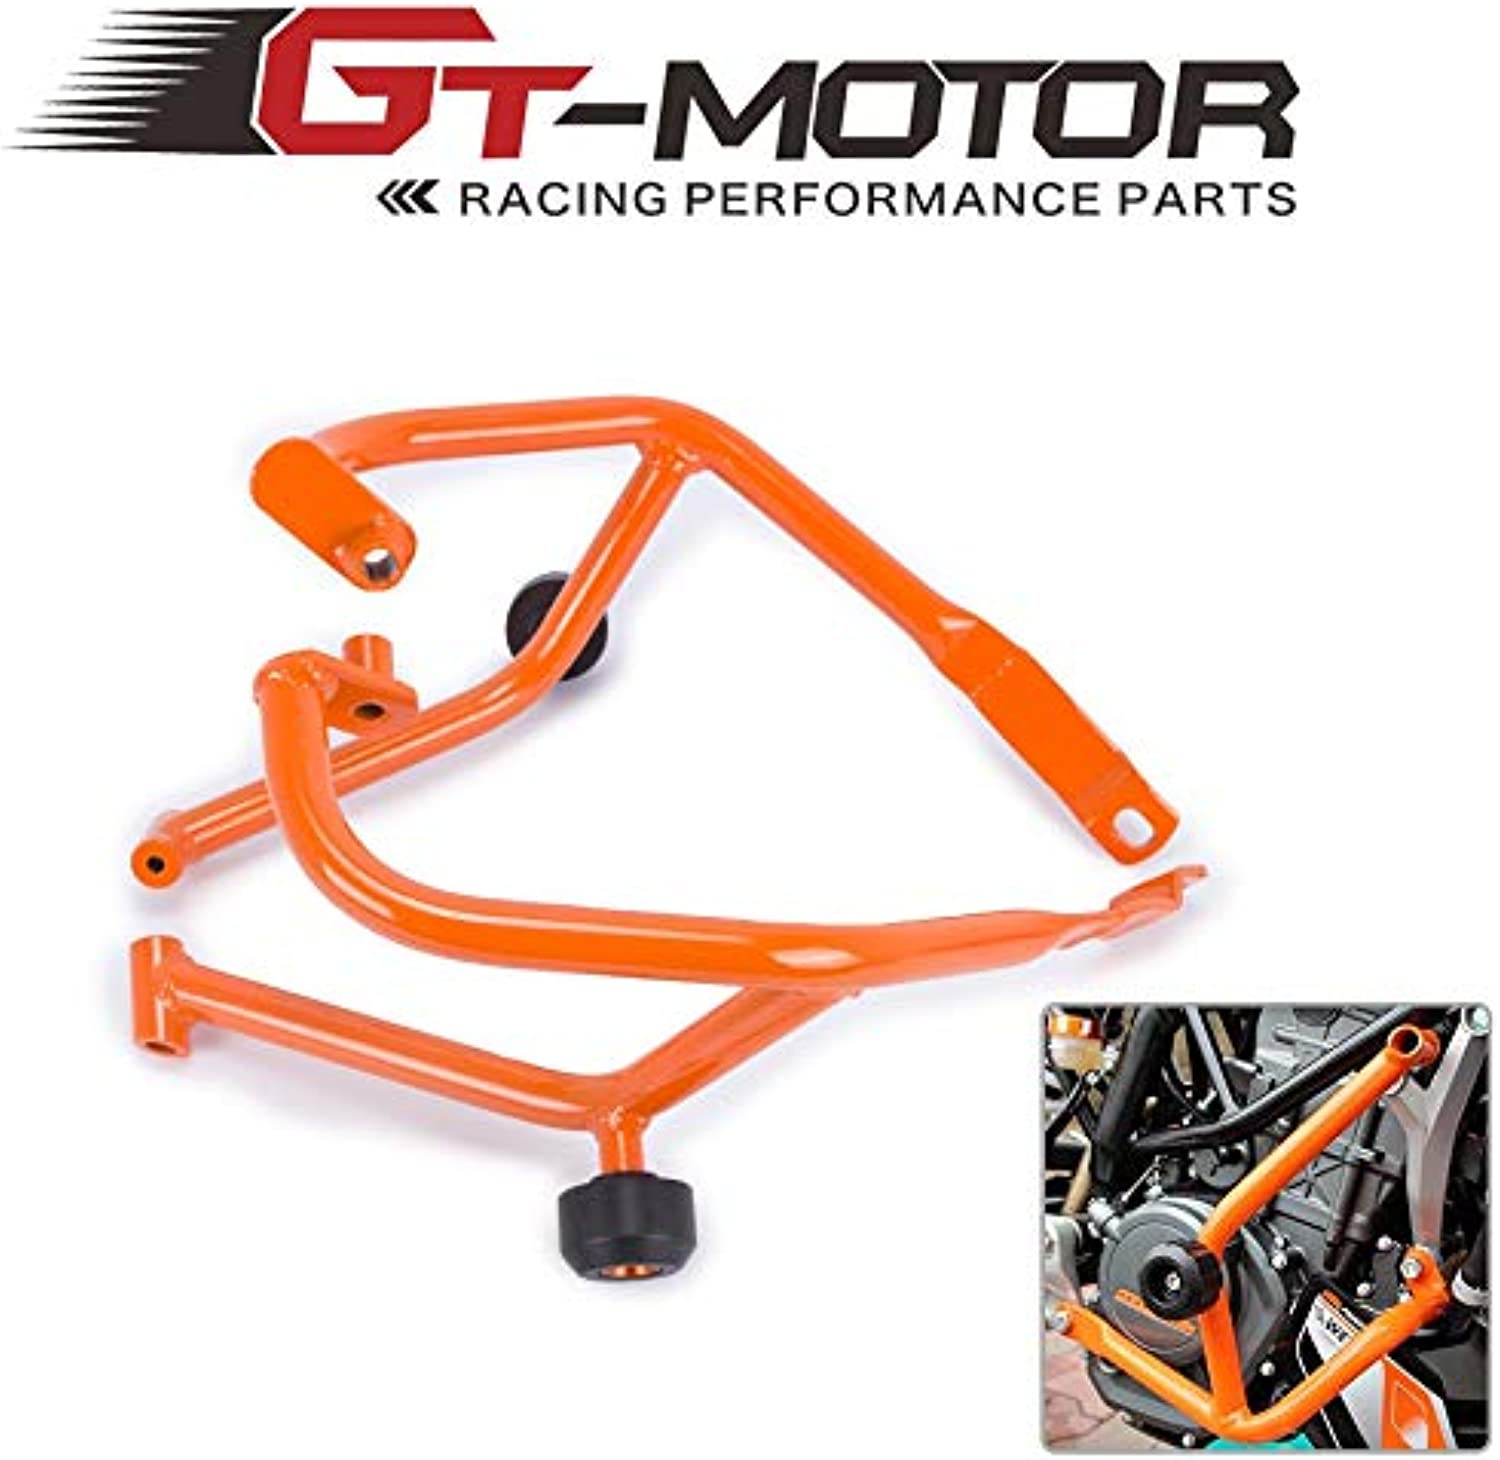 Fittings Motorcycle Refit Tank Predection Bar Predection Guard Crash Bars Frame for KTM Duke 390 DUKE390